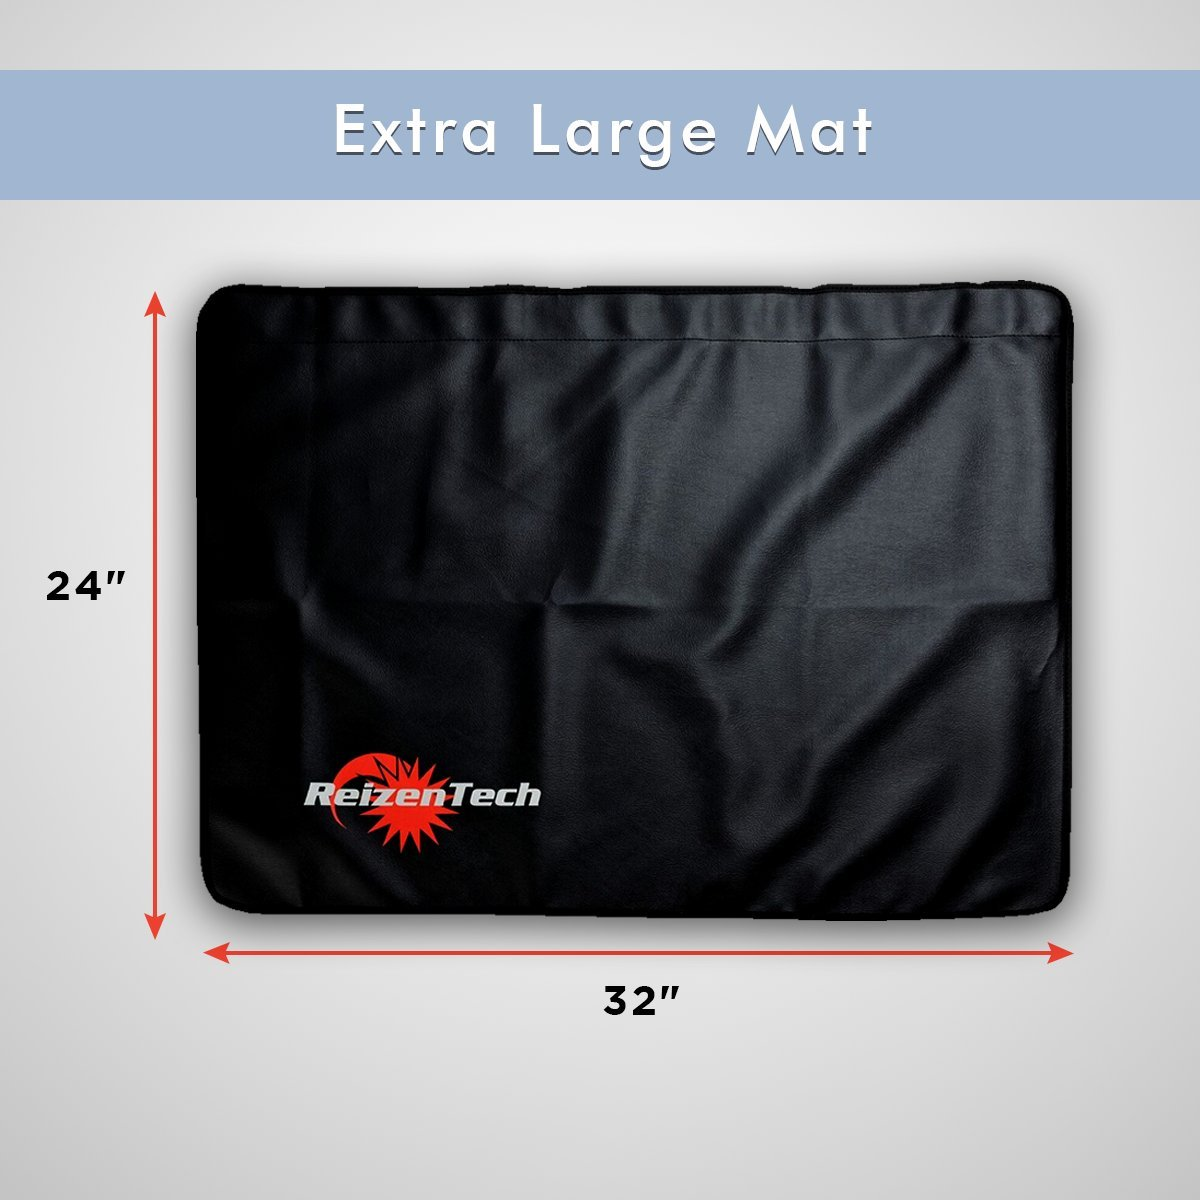 Reizen Tech Professional Magnetic Auto Fender Cover 32x24 Thick Car Pad with 8 Strong Magnets for Stability Soft Padding for Scratching Prevention Protective Mat for Repair Automotive Work